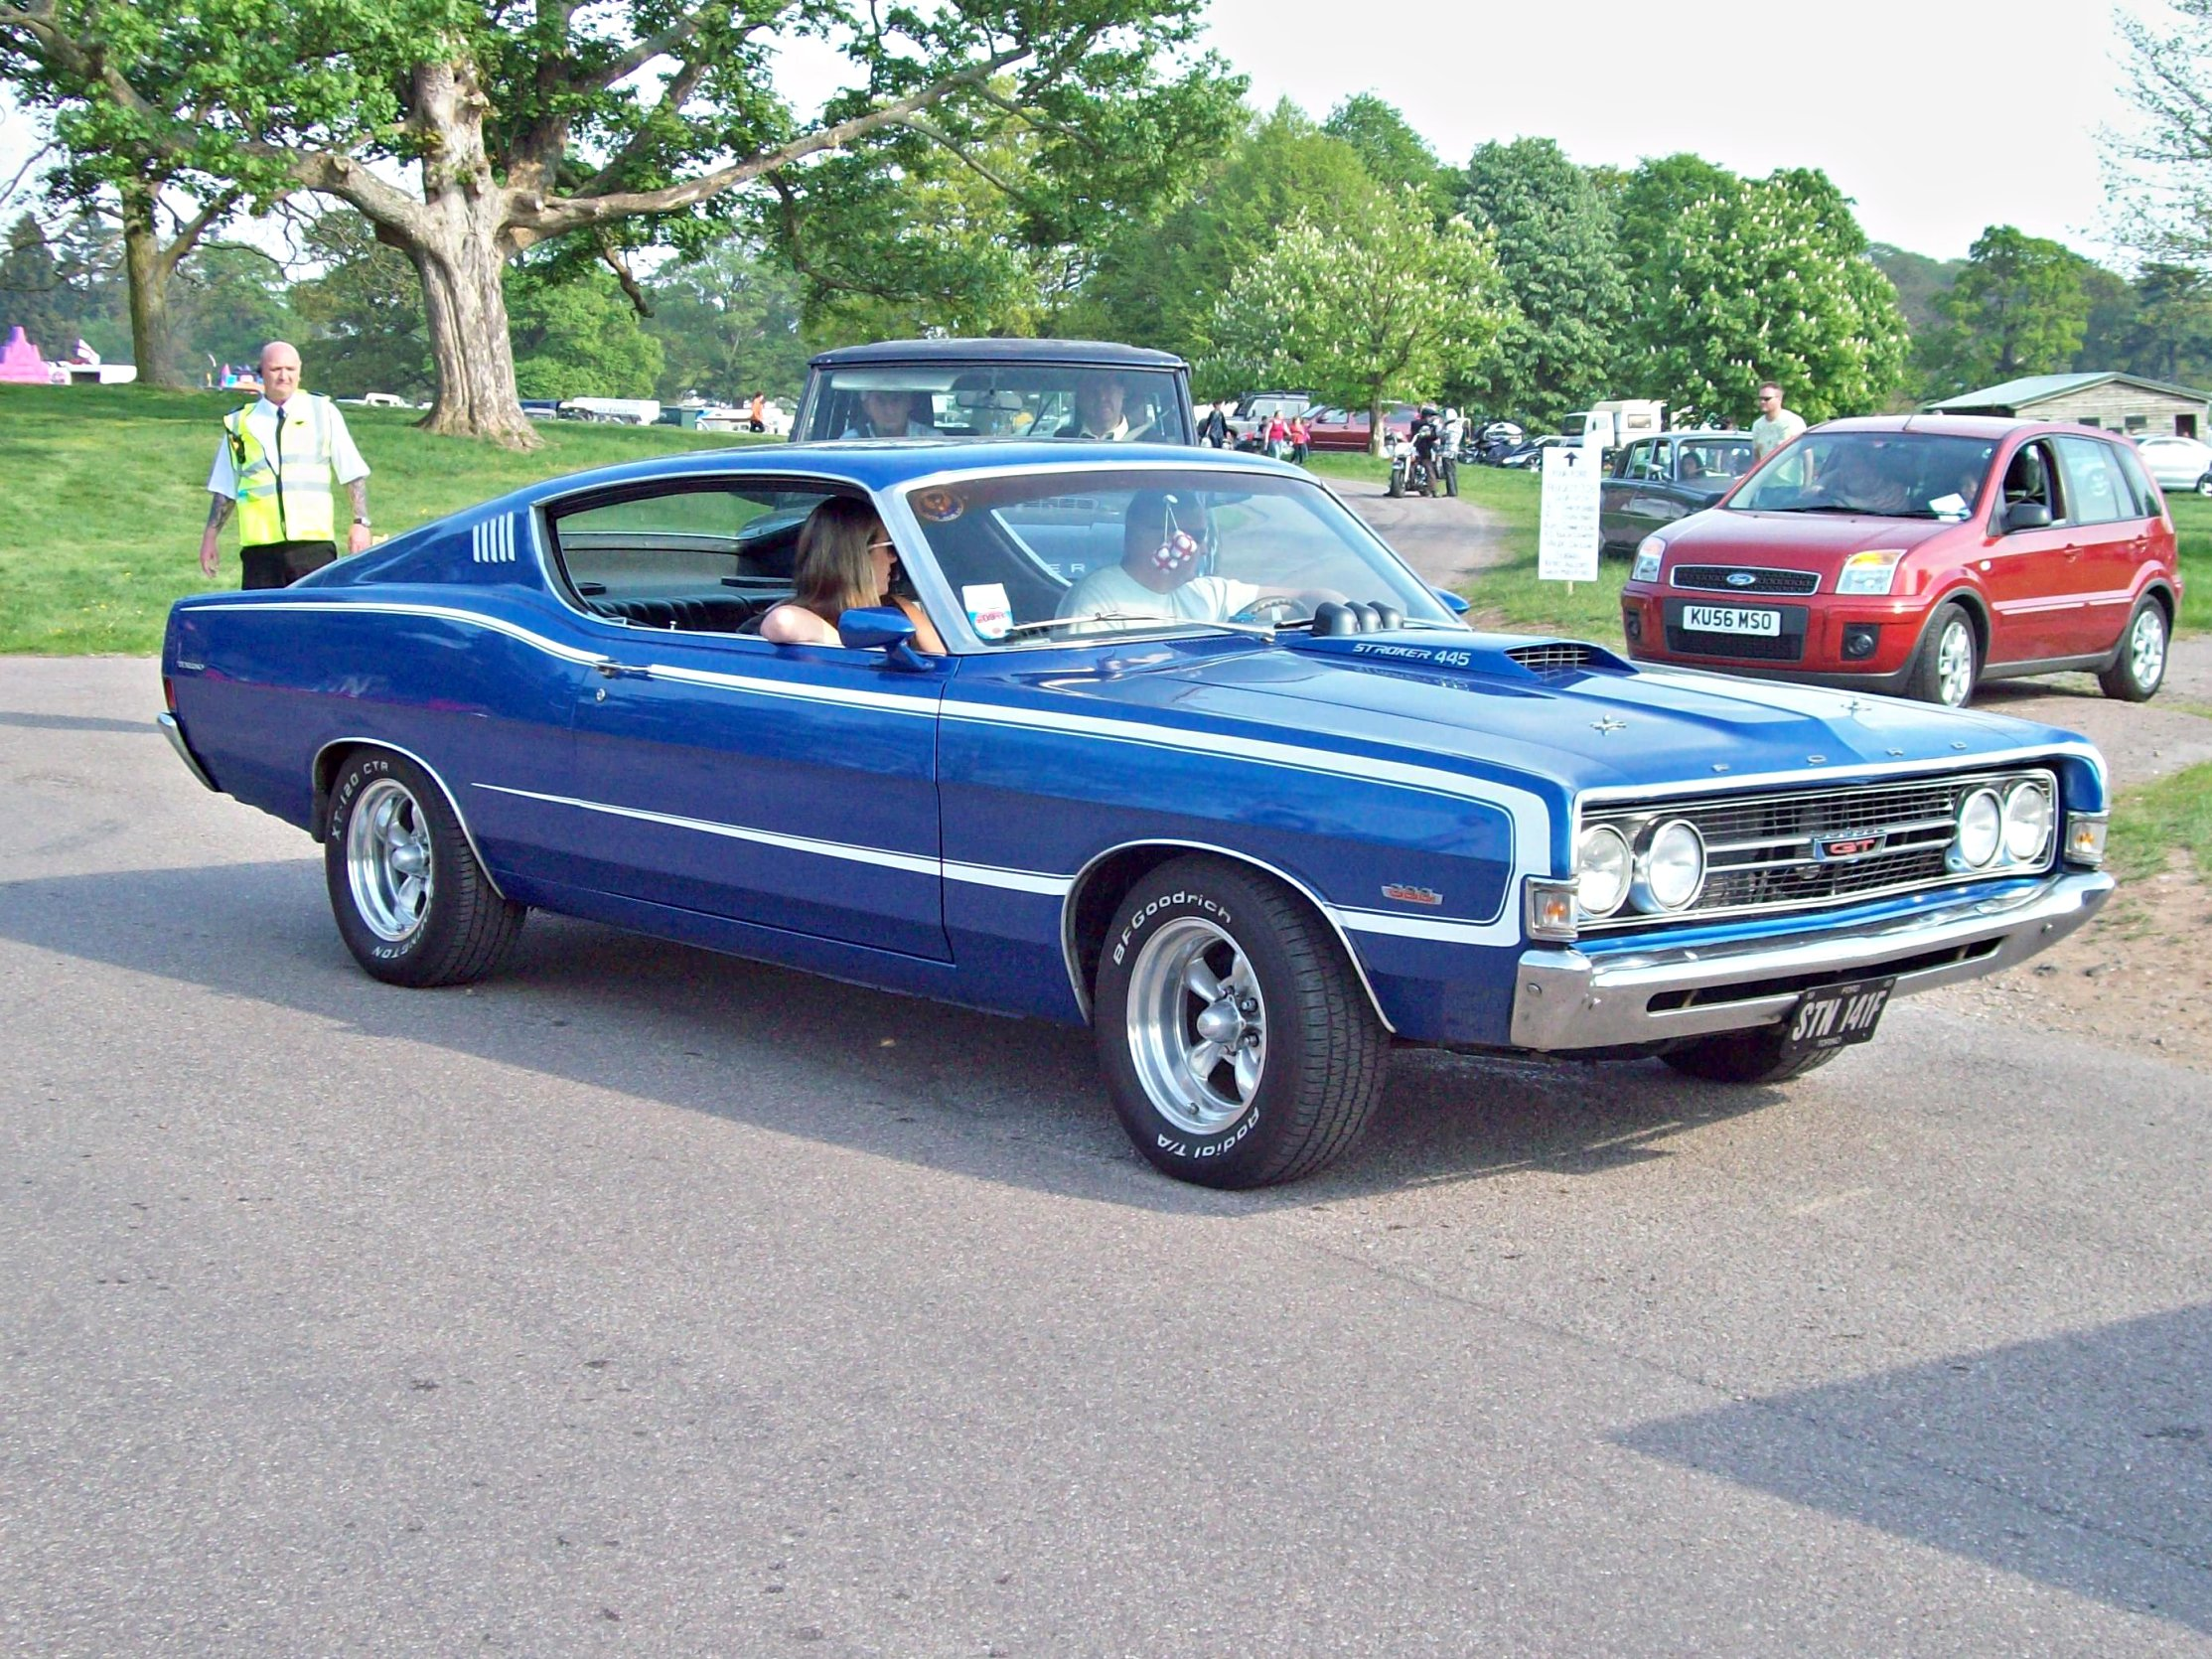 1968 Ford Galaxie pics and info MusCars